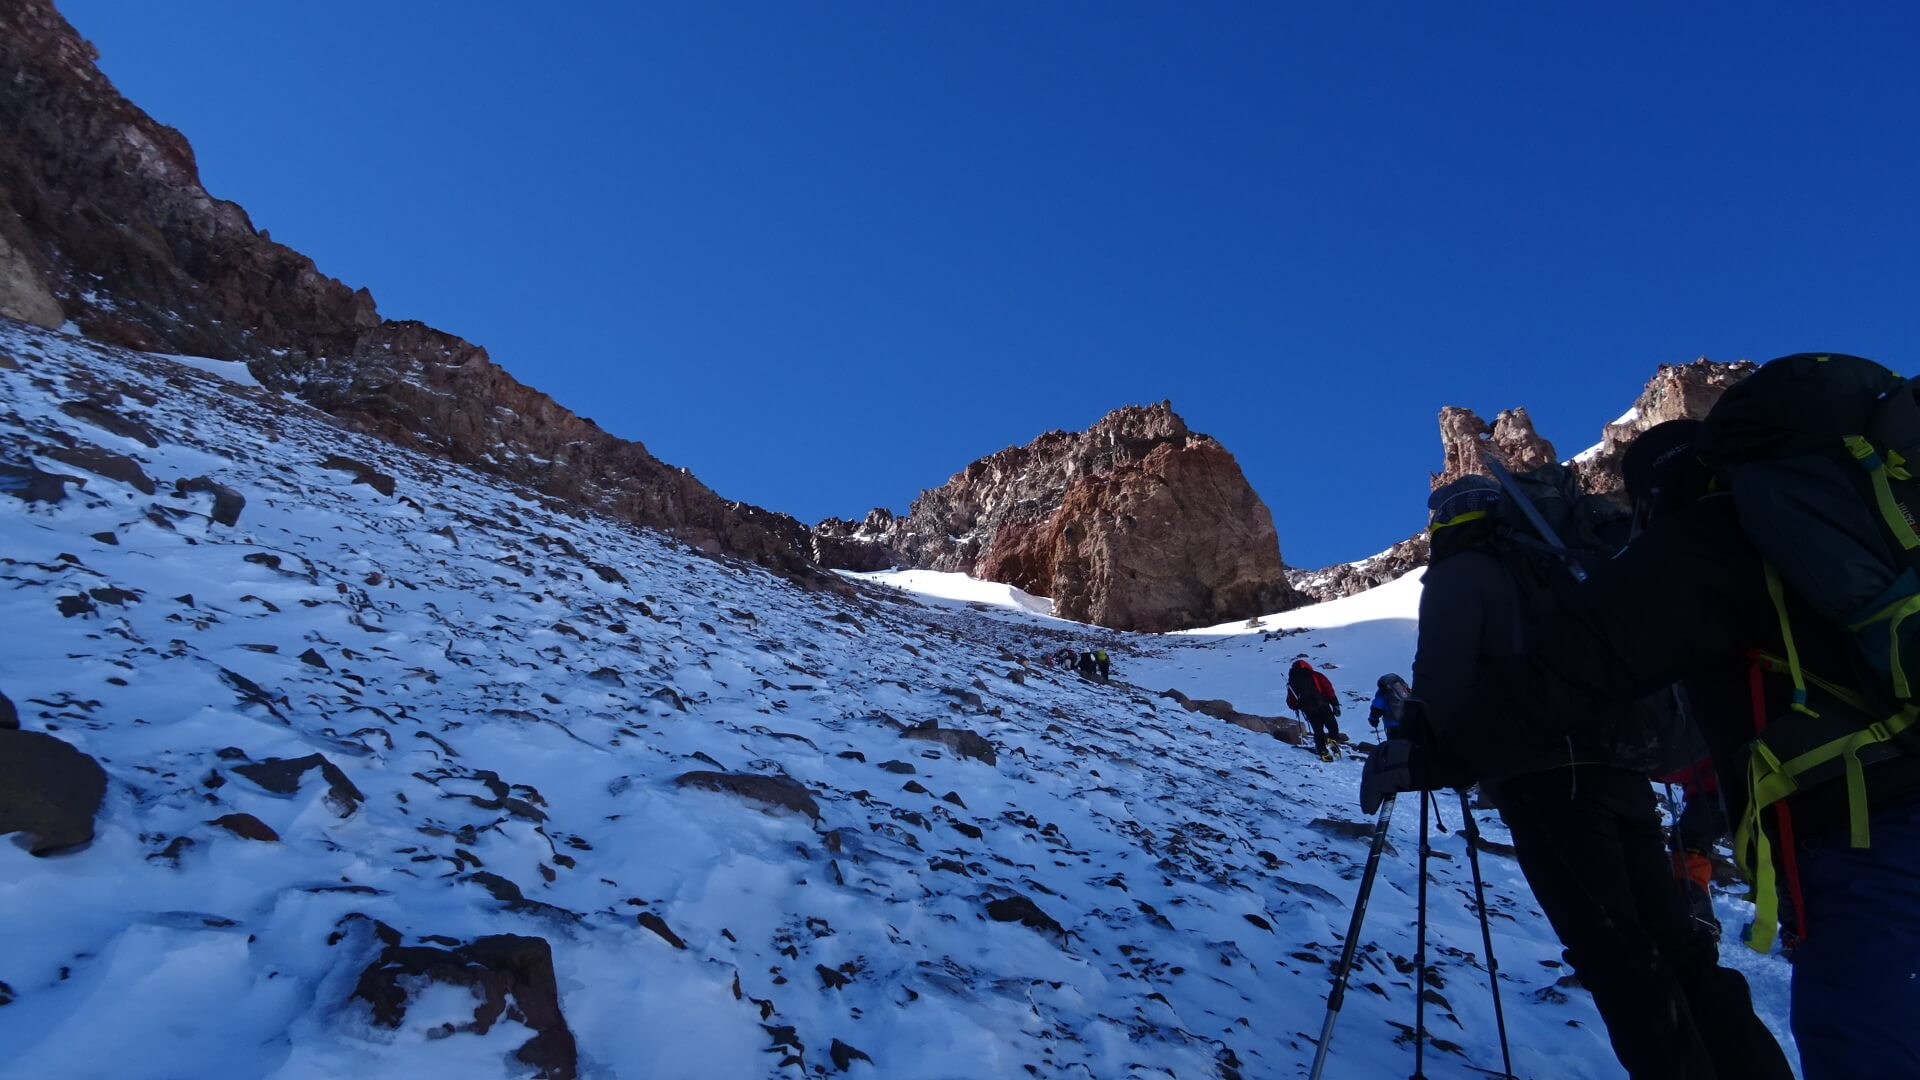 Summit Day on Aconcagua 2016 - 7summits4help